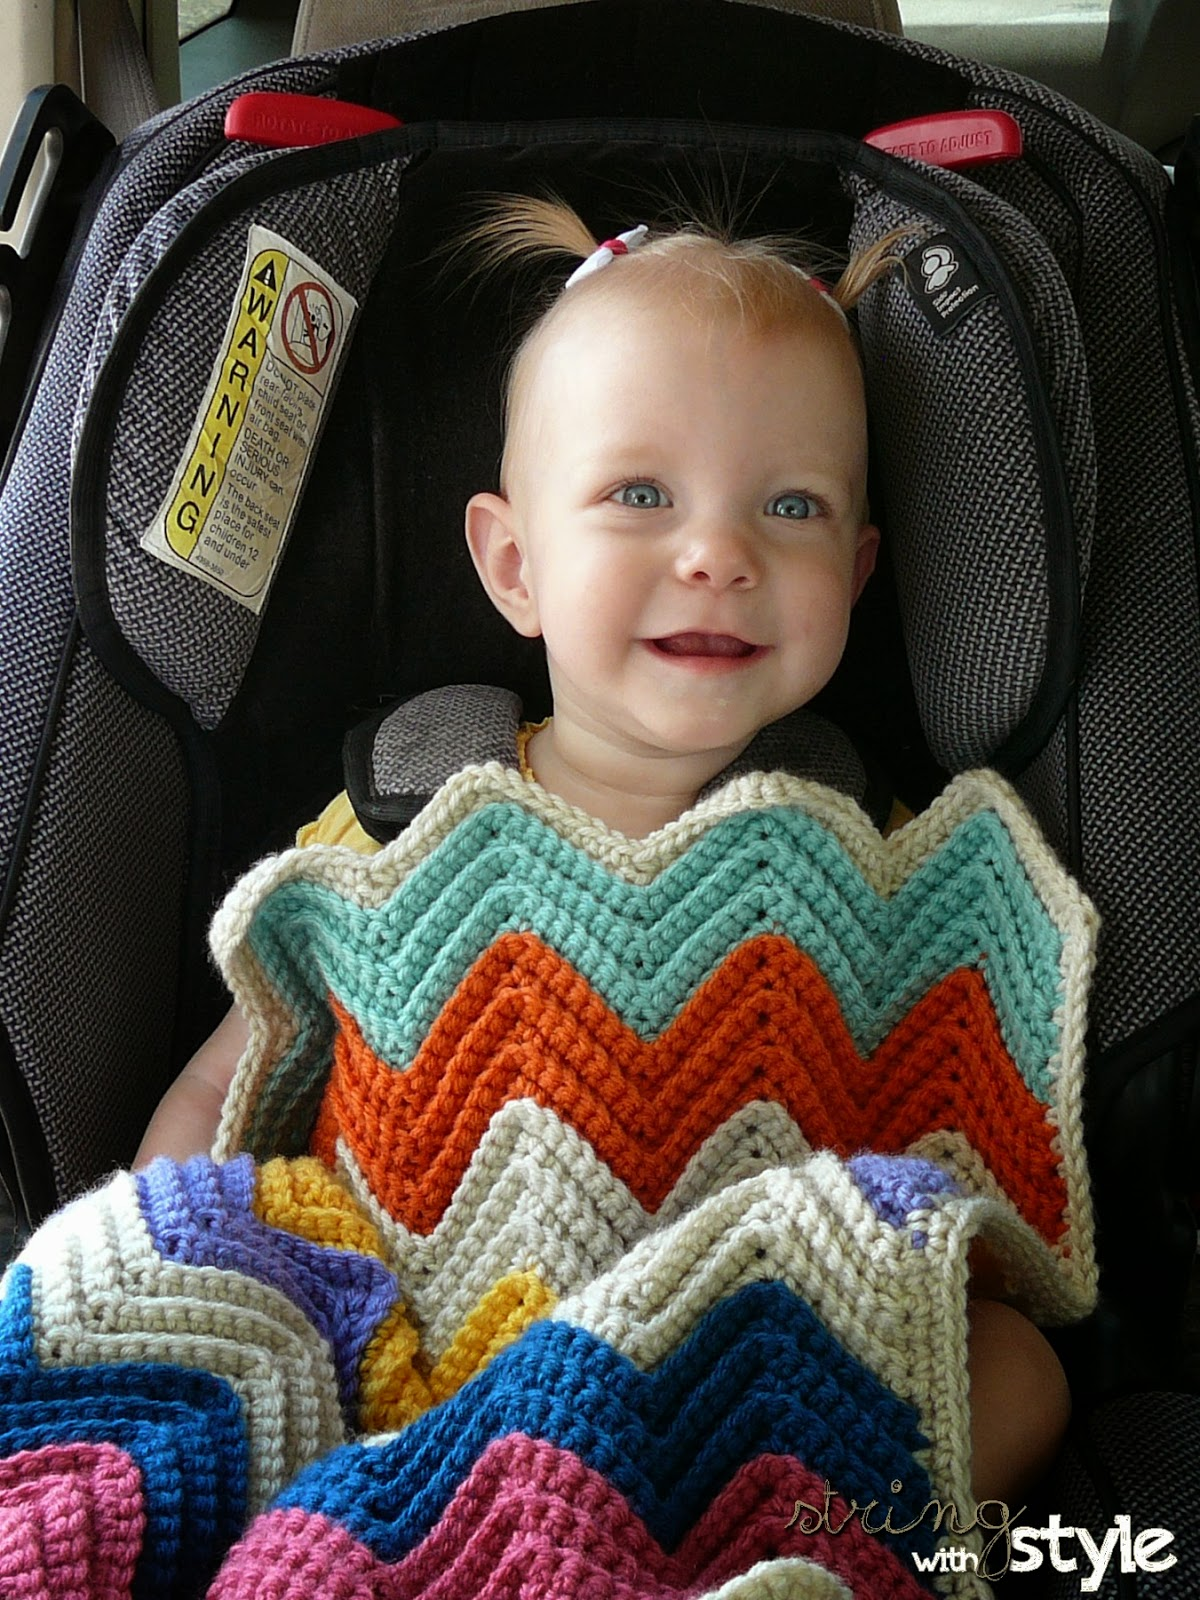 String With Style: Free Crochet Patterns